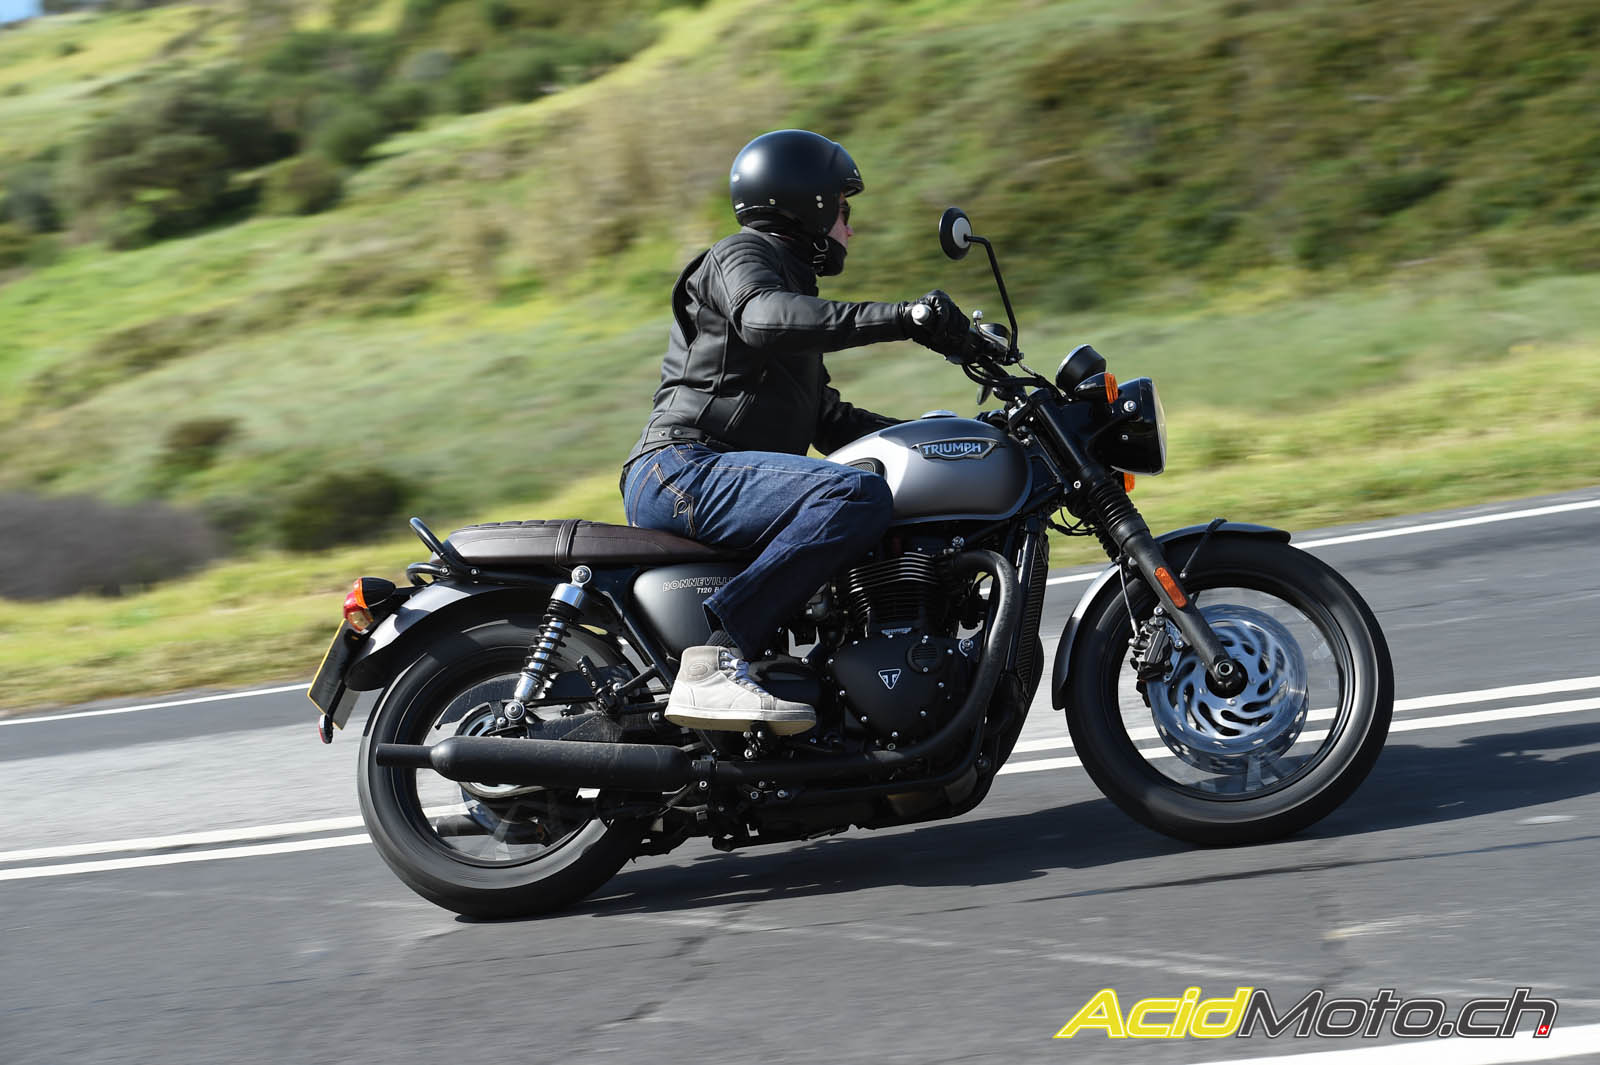 essai triumph bonneville t120 et thruxton r les ambassadrices du modern classic page 2 sur 2. Black Bedroom Furniture Sets. Home Design Ideas